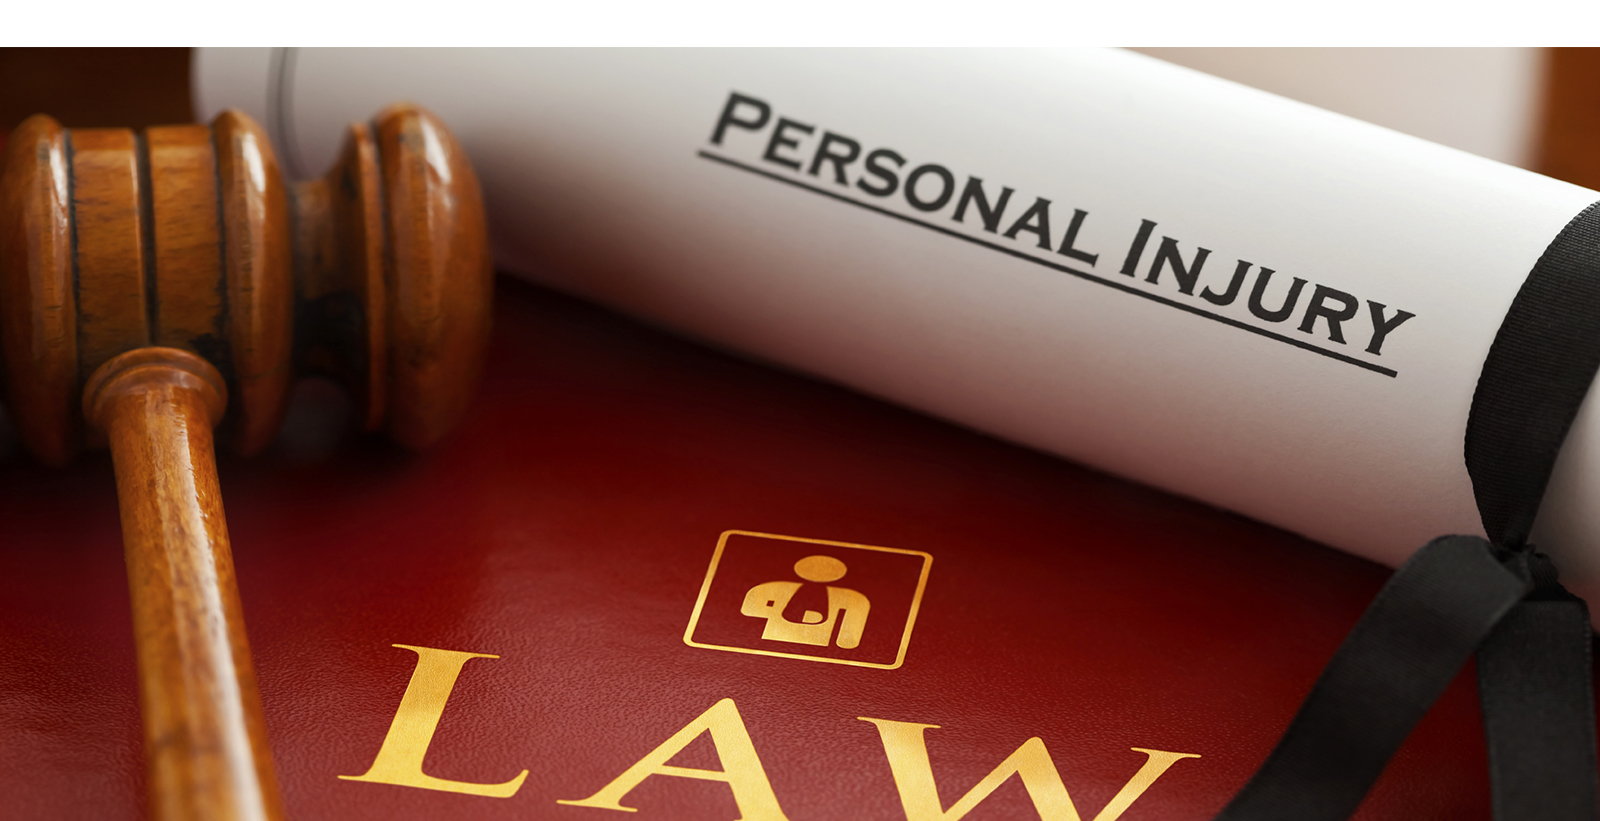 How To Get Compensated For Personal Injuries Occurred In Italy That Aren't Your Fault